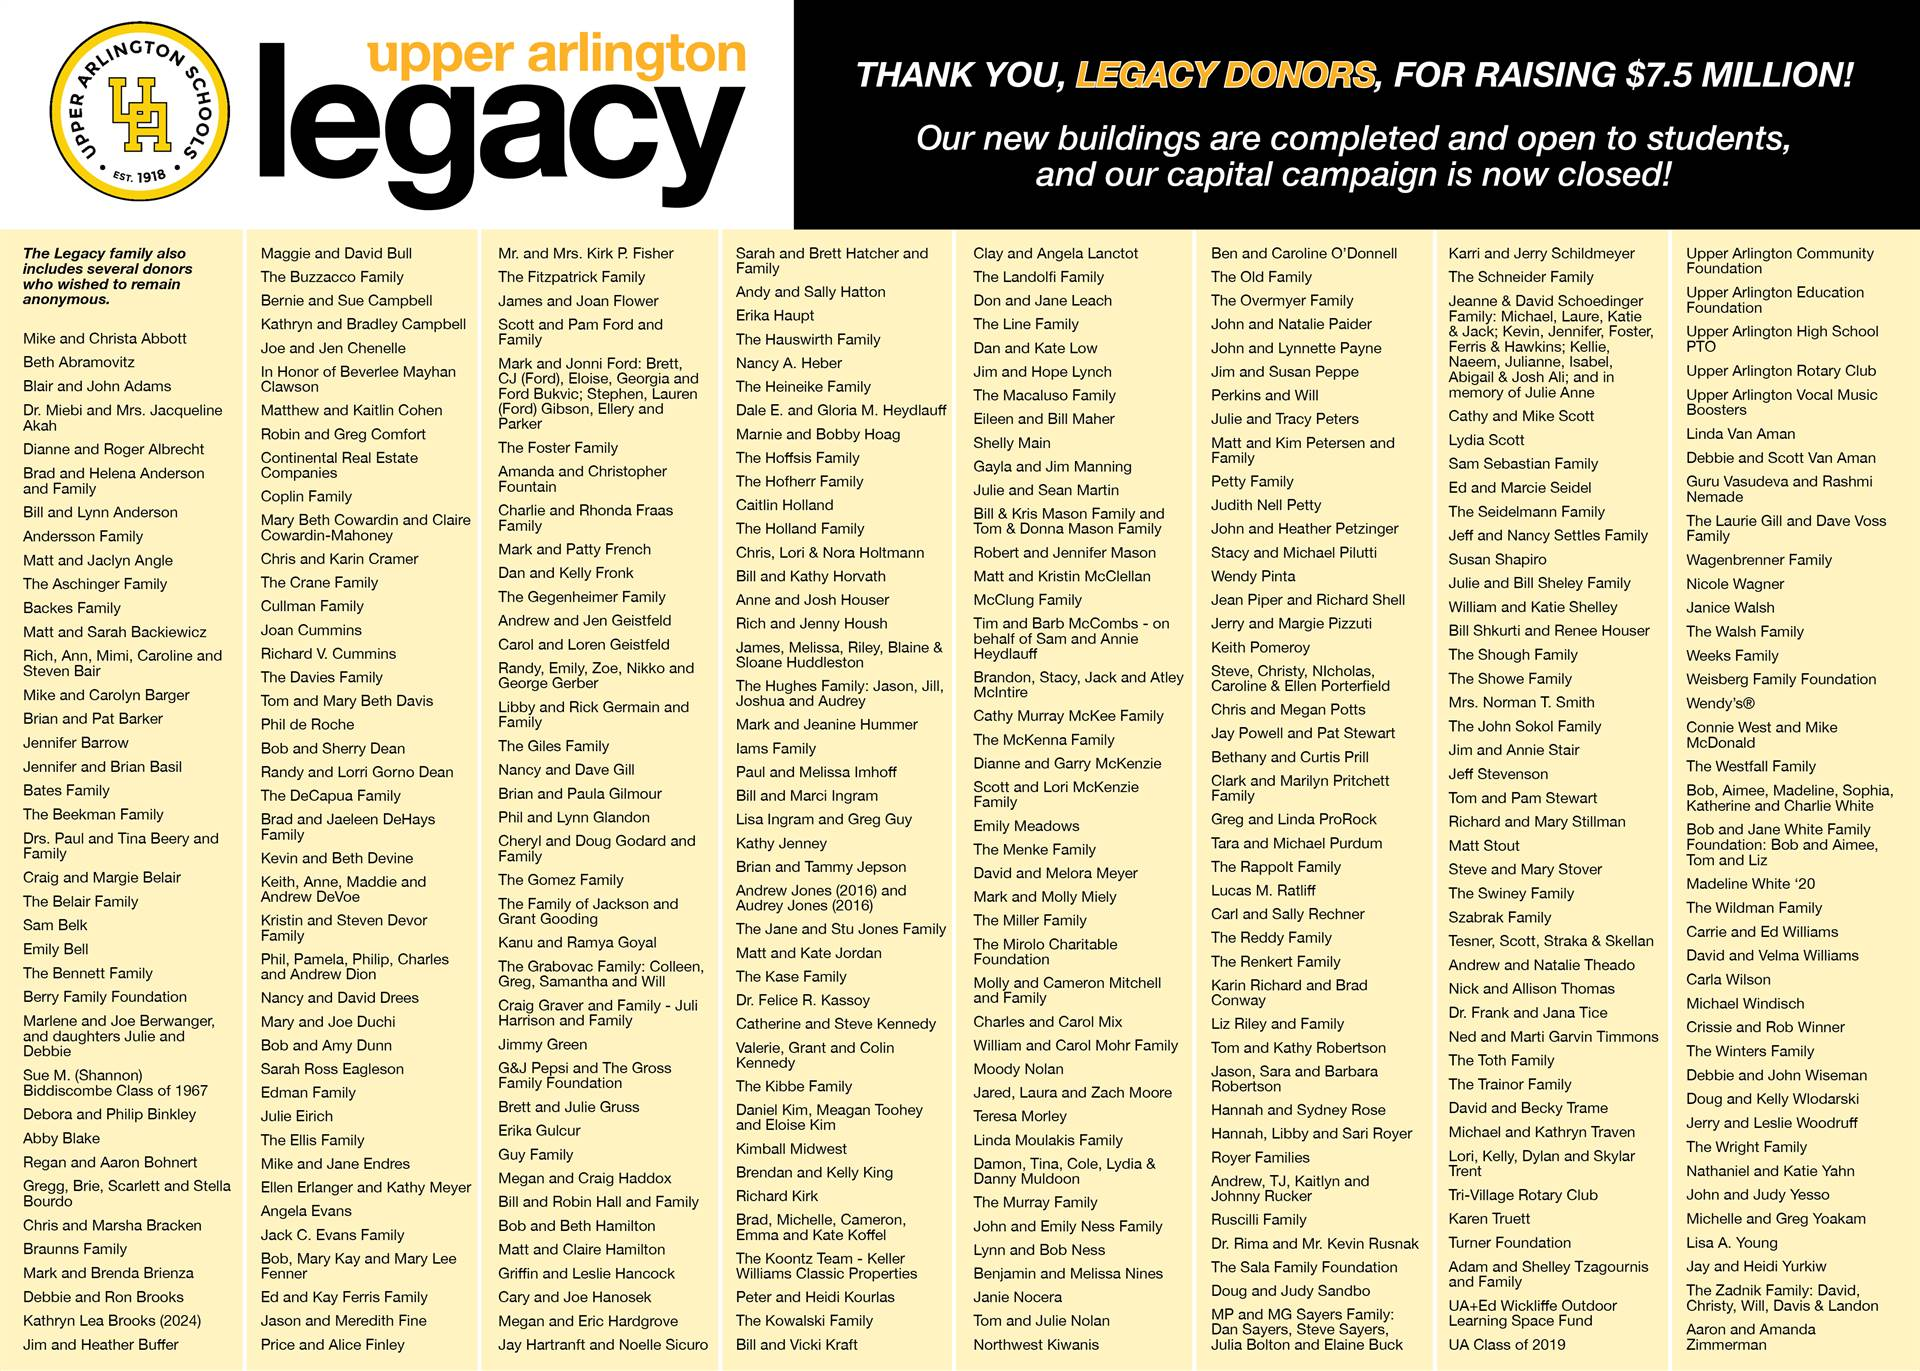 Legacy donors list